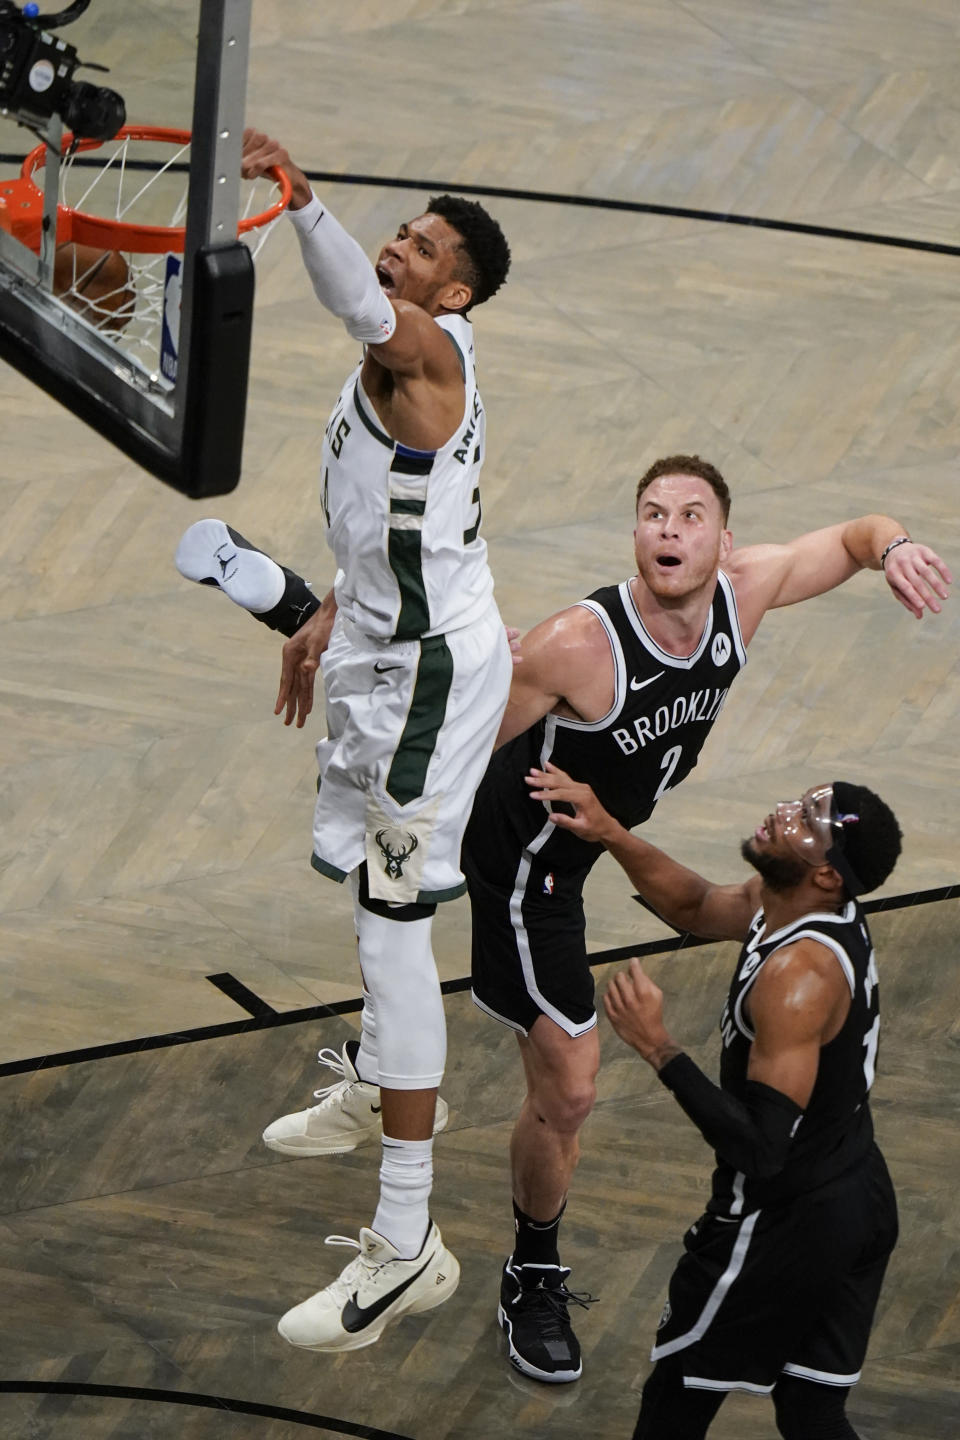 Milwaukee Bucks' Giannis Antetokounmpo, left, dunks in front of Brooklyn Nets' Blake Griffin (2) and Bruce Brown during the second half of Game 7 of a second-round NBA basketball playoff series Saturday, June 19, 2021, in New York. (AP Photo/Frank Franklin II)